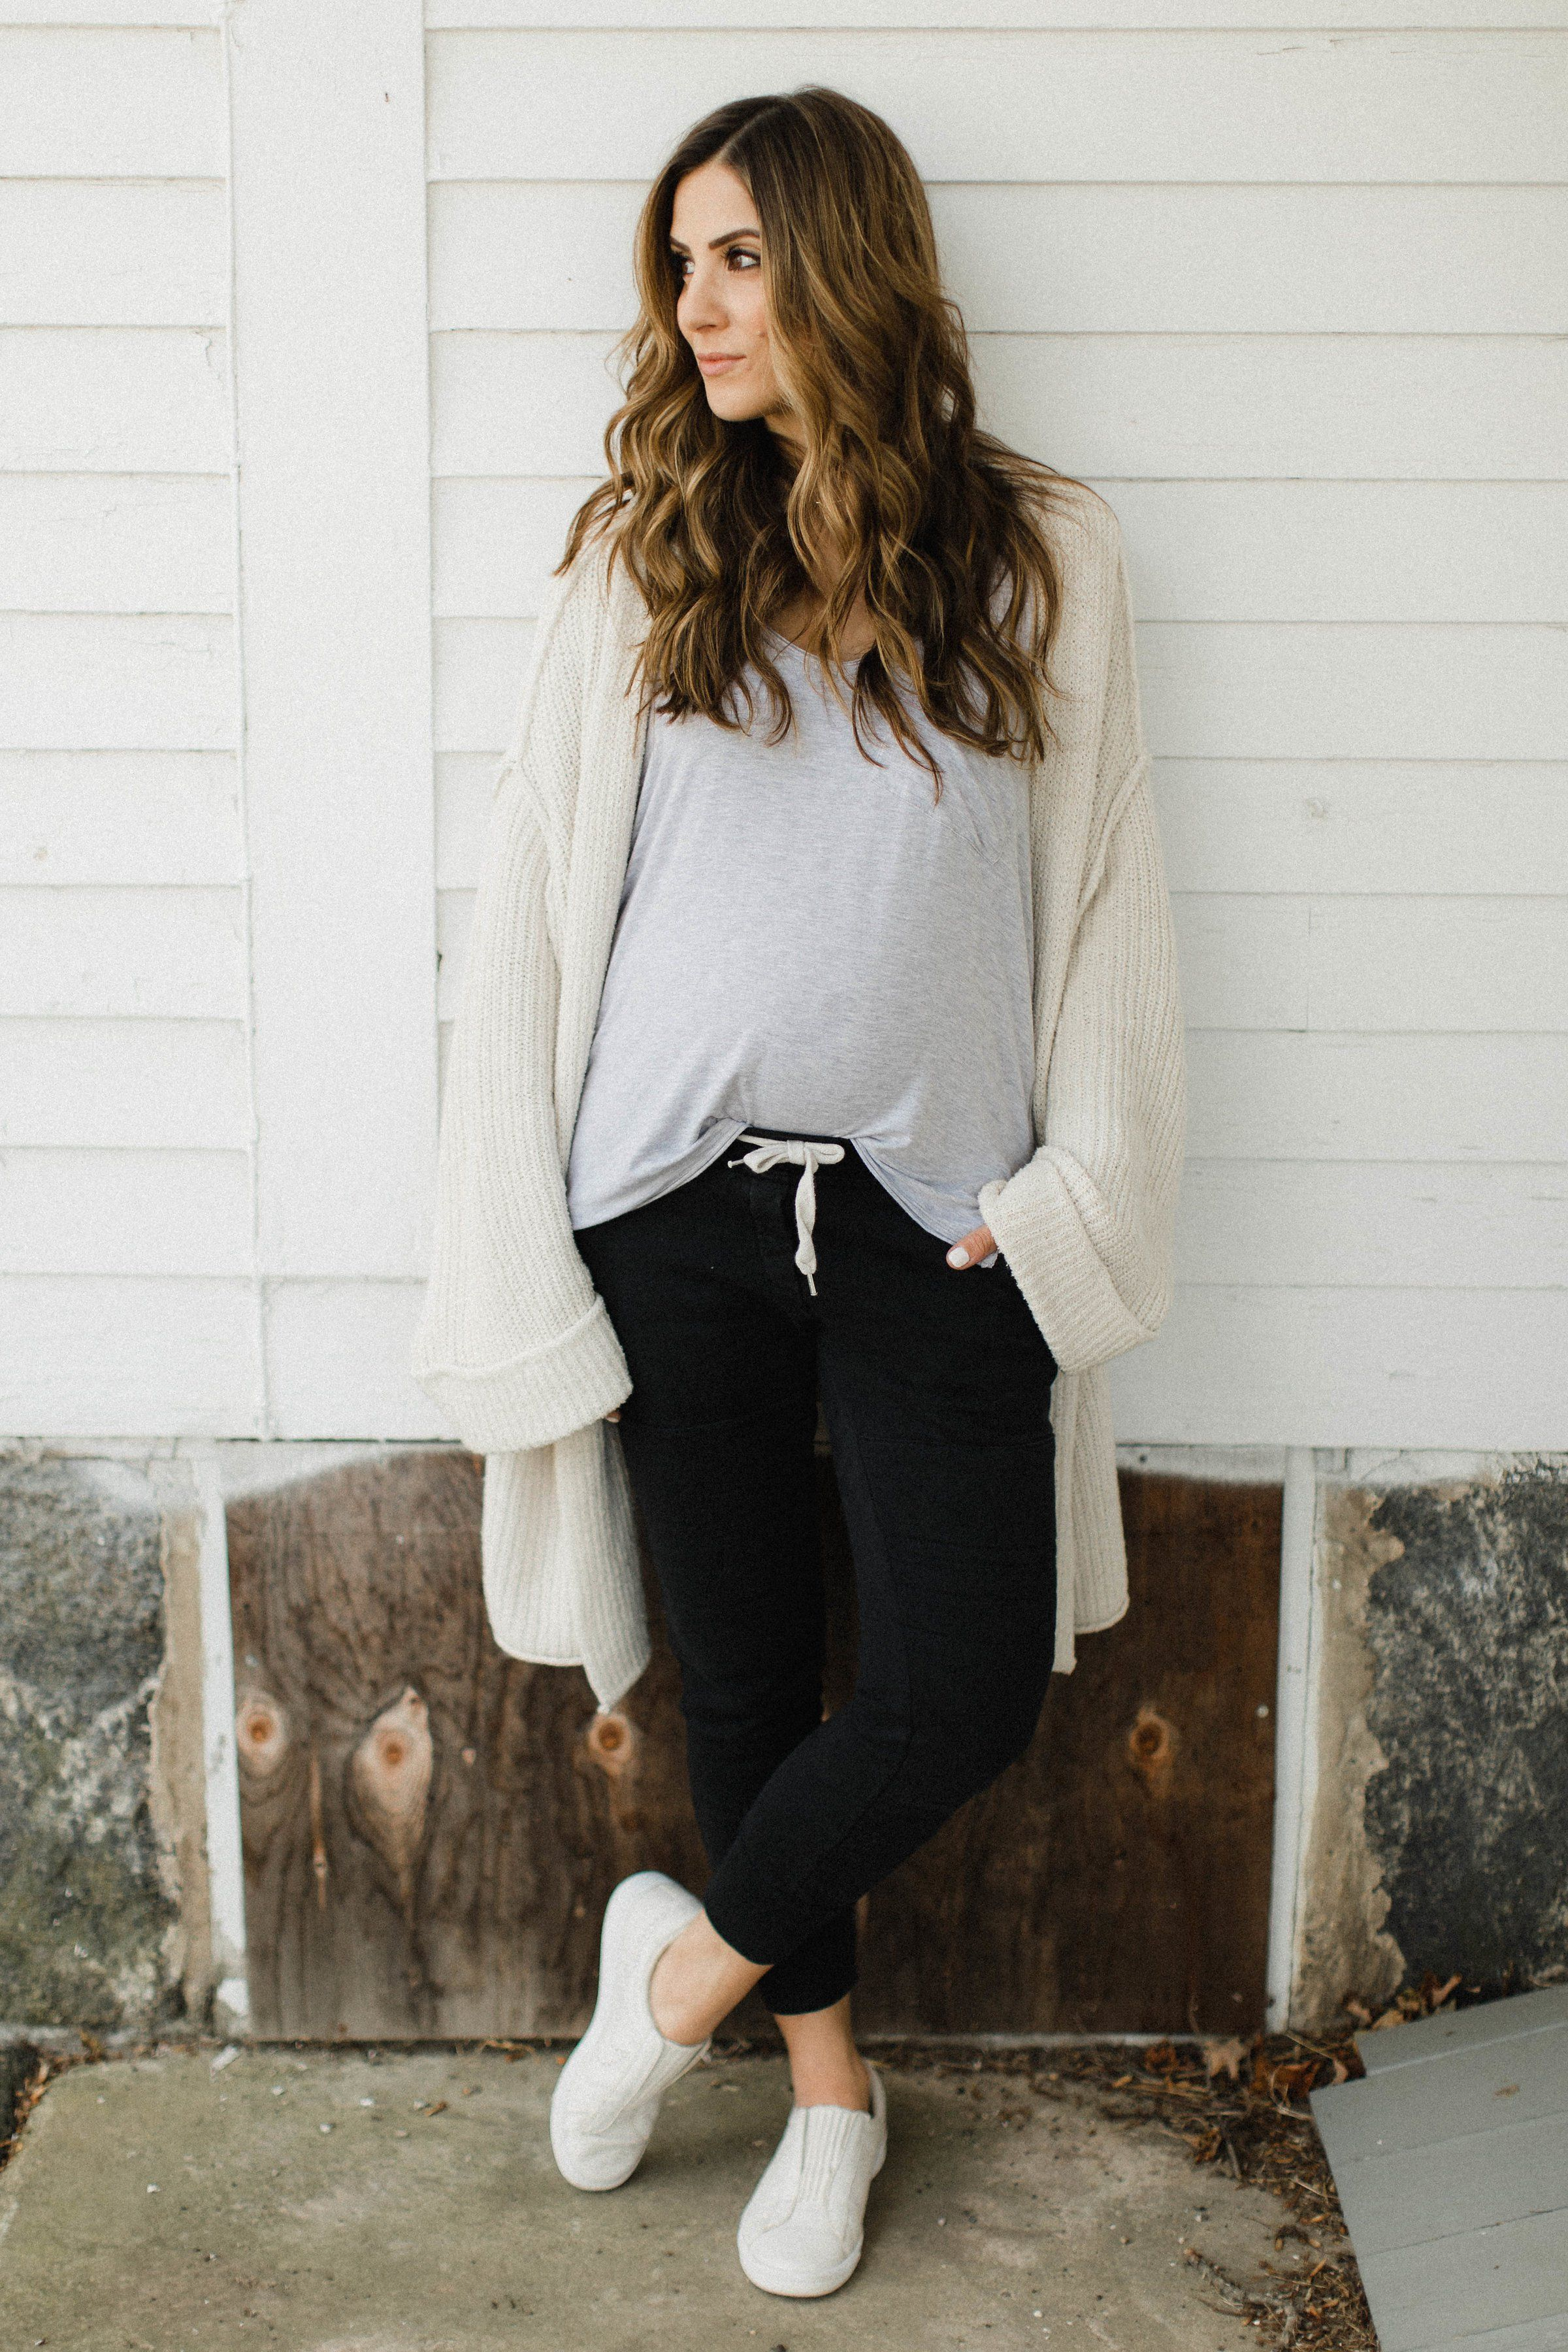 98fb8029e1945 Life and style blogger Lauren McBride shares her tips on How to Style  Jogger Pants for